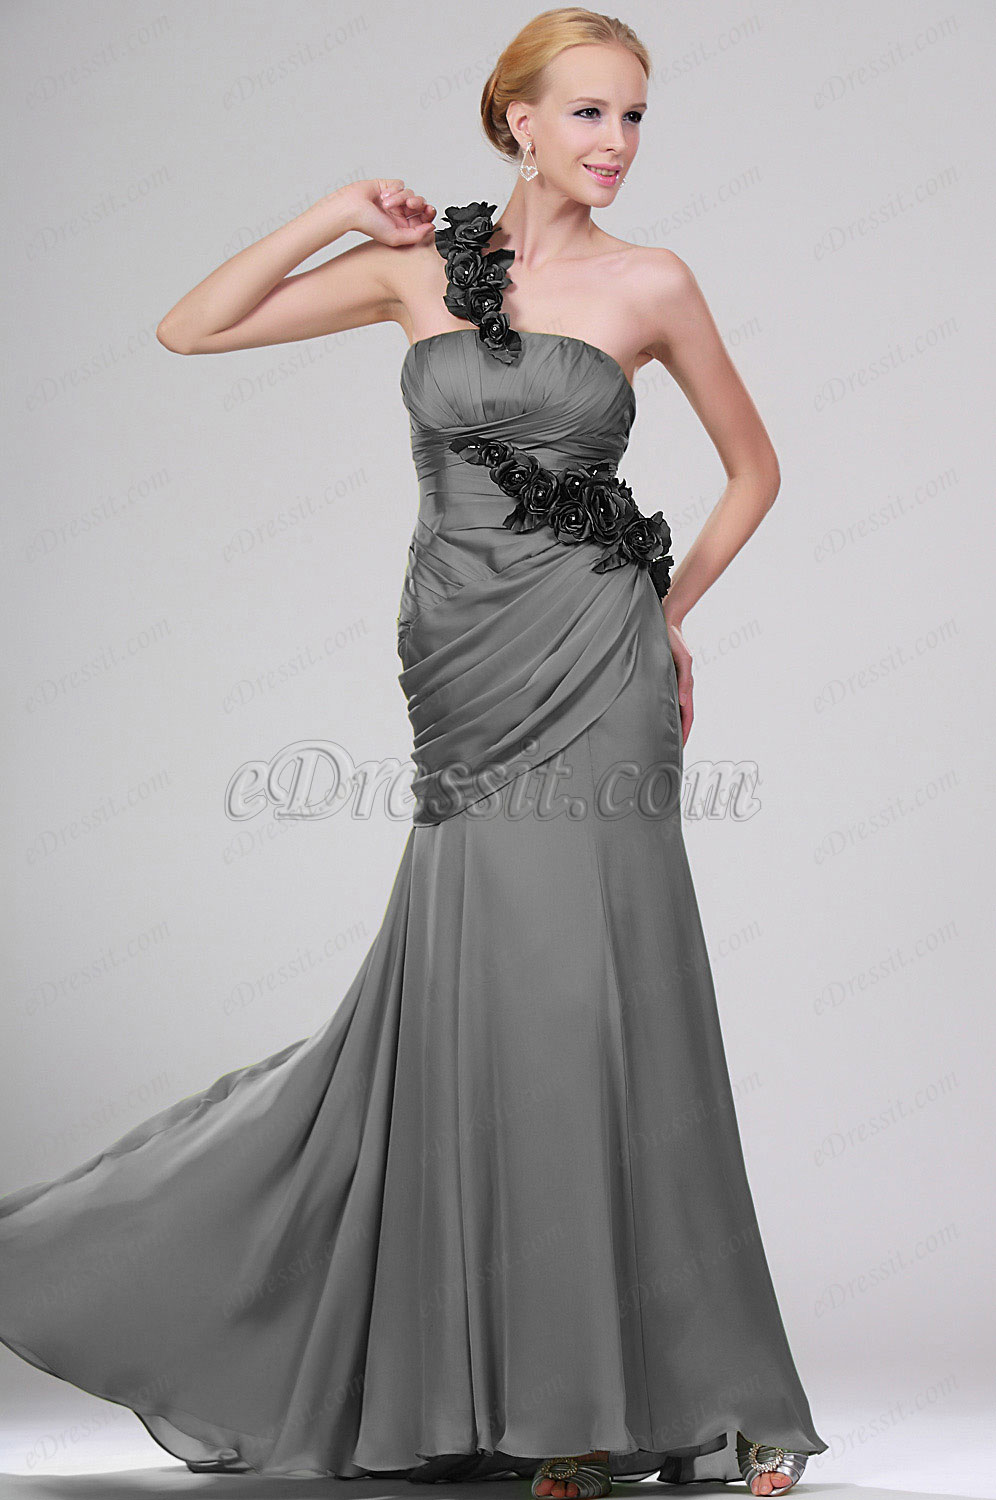 Clearance Sale! eDressit Gray Evening Dress-Size UK20 (00110104b)